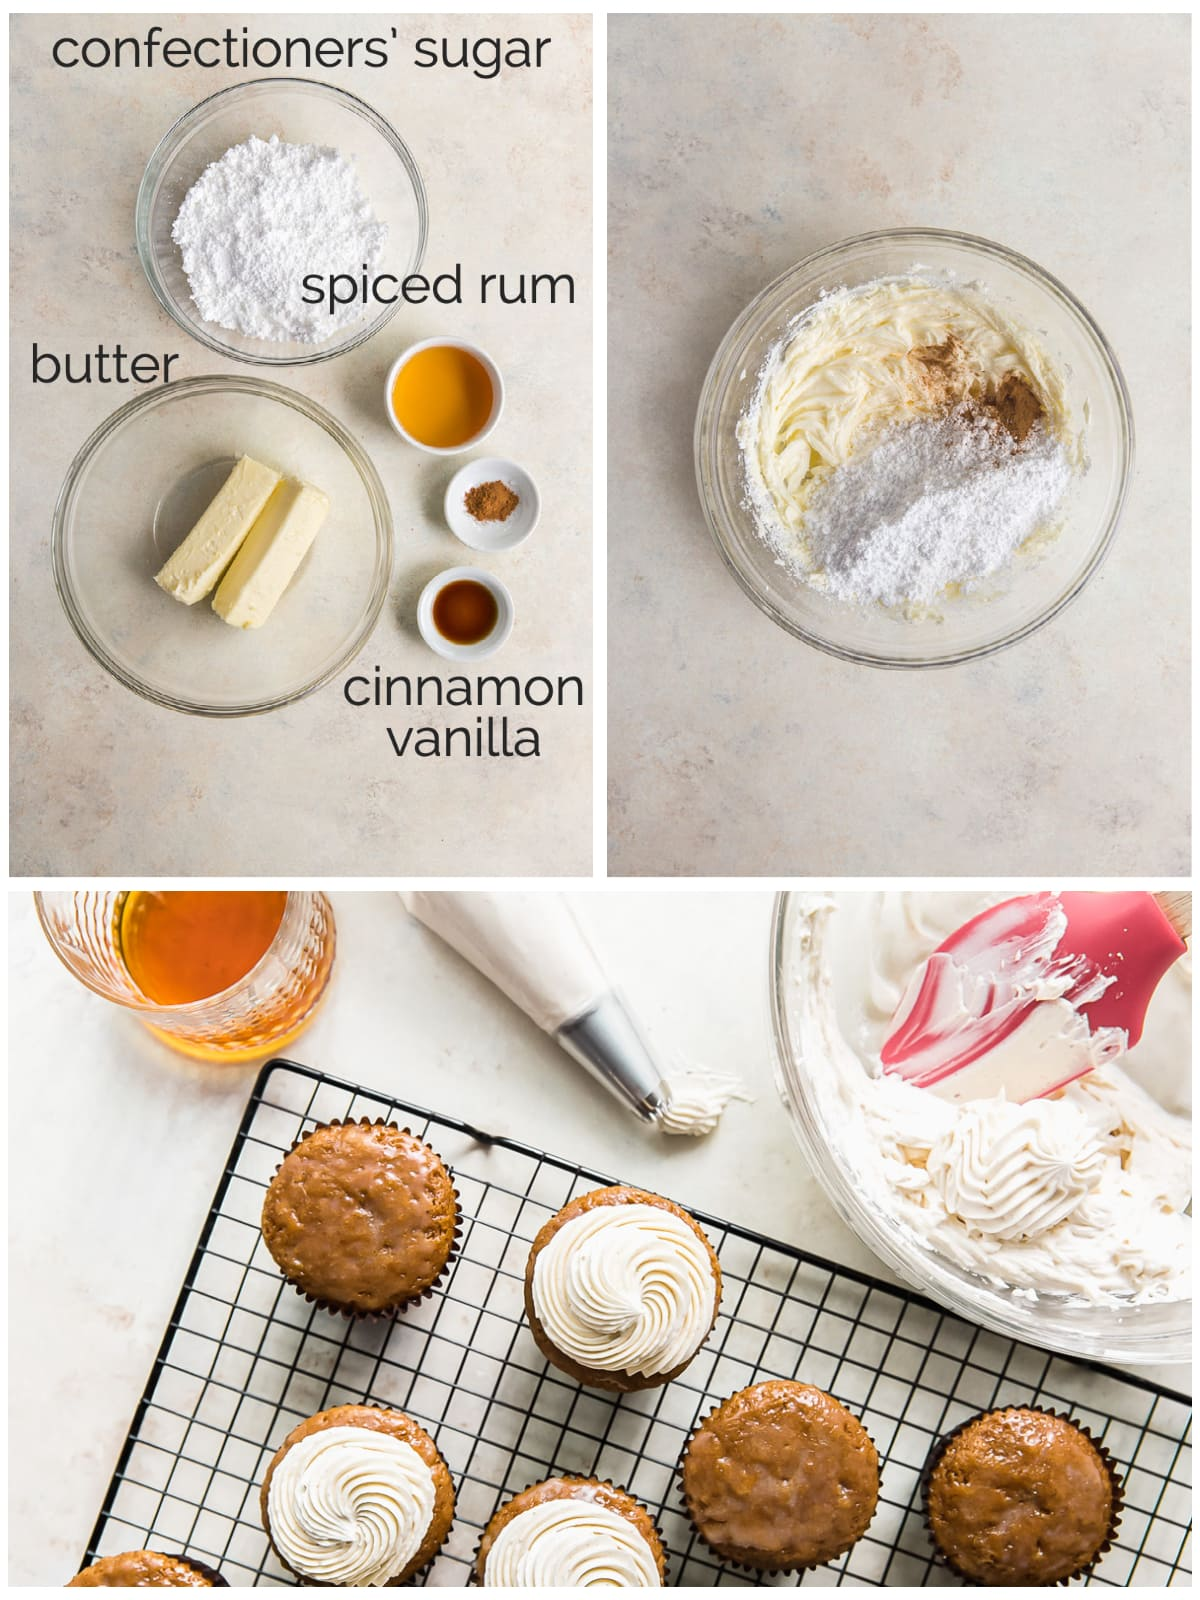 photo collage showing ingredients and steps to make rum buttercream frosting